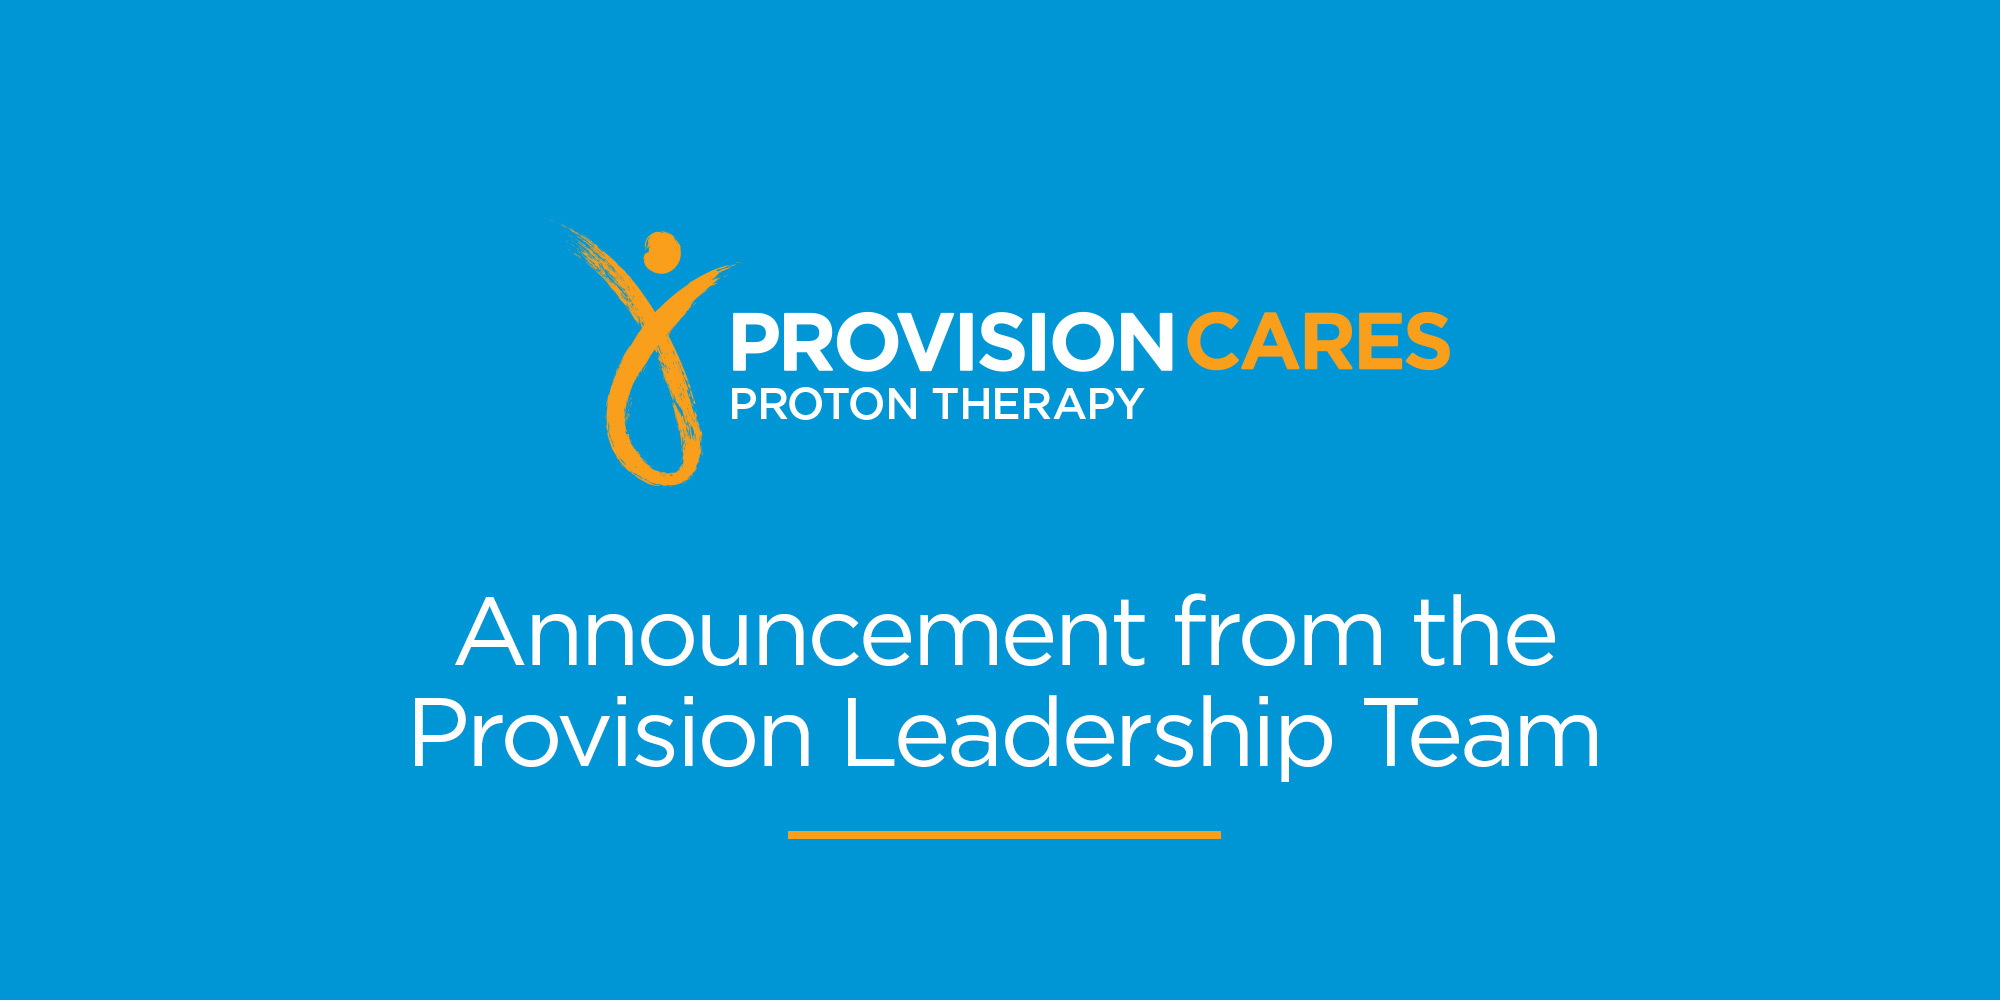 COVID-19 update from Provision